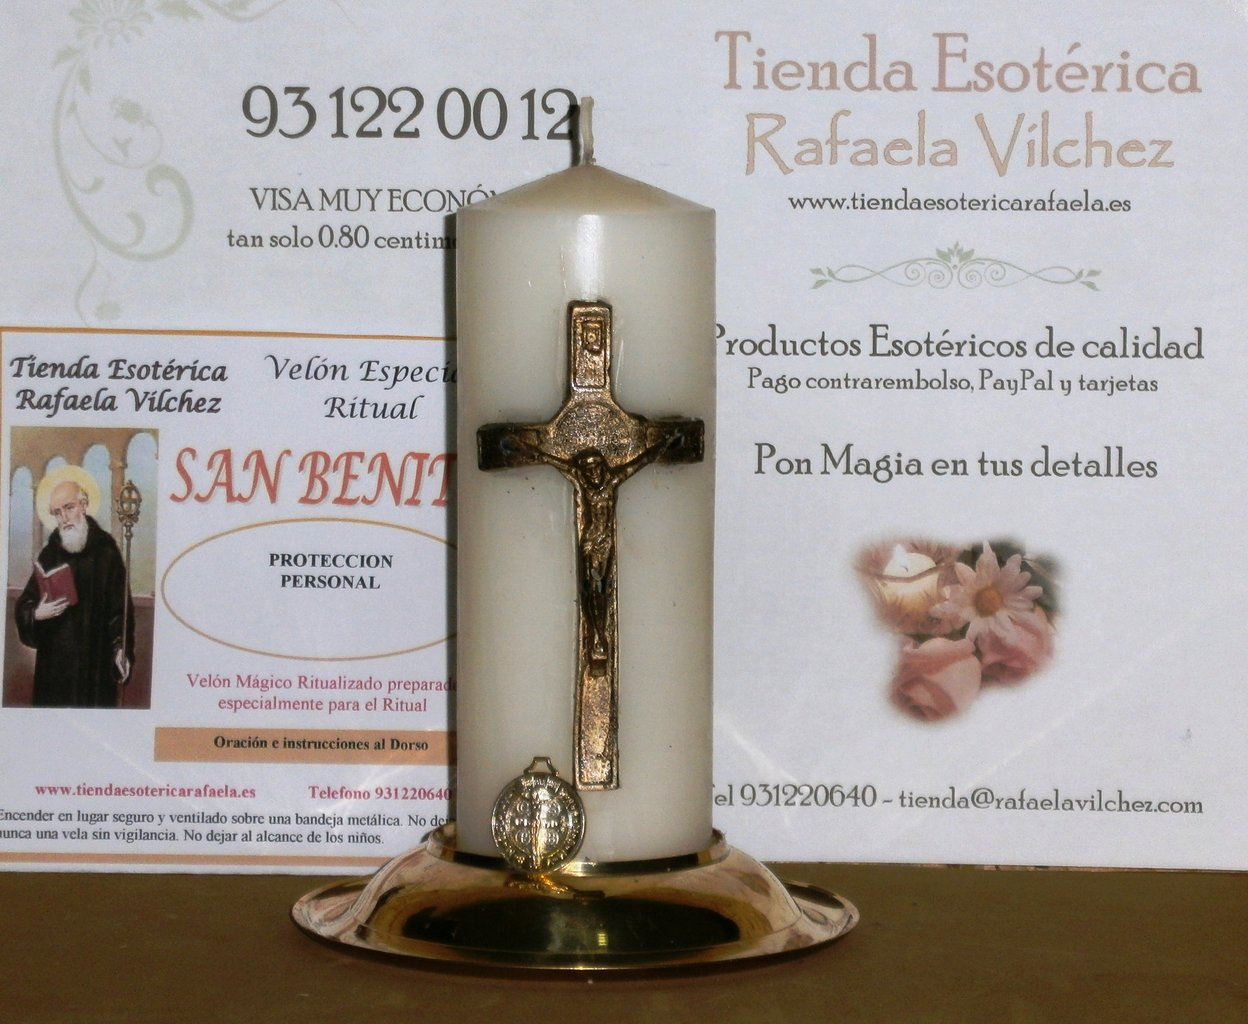 san benito hindu personals Simple $89500 cremation save time and money from the comfort of your home, you can make all the cremation decisions with the facts and costs clearly at your fingertips don't waste time driving around town, all paperwork can be managed by fax – phone or computerdon't worry about being pressured by costly funeral homes to spend more money on things you don't need.